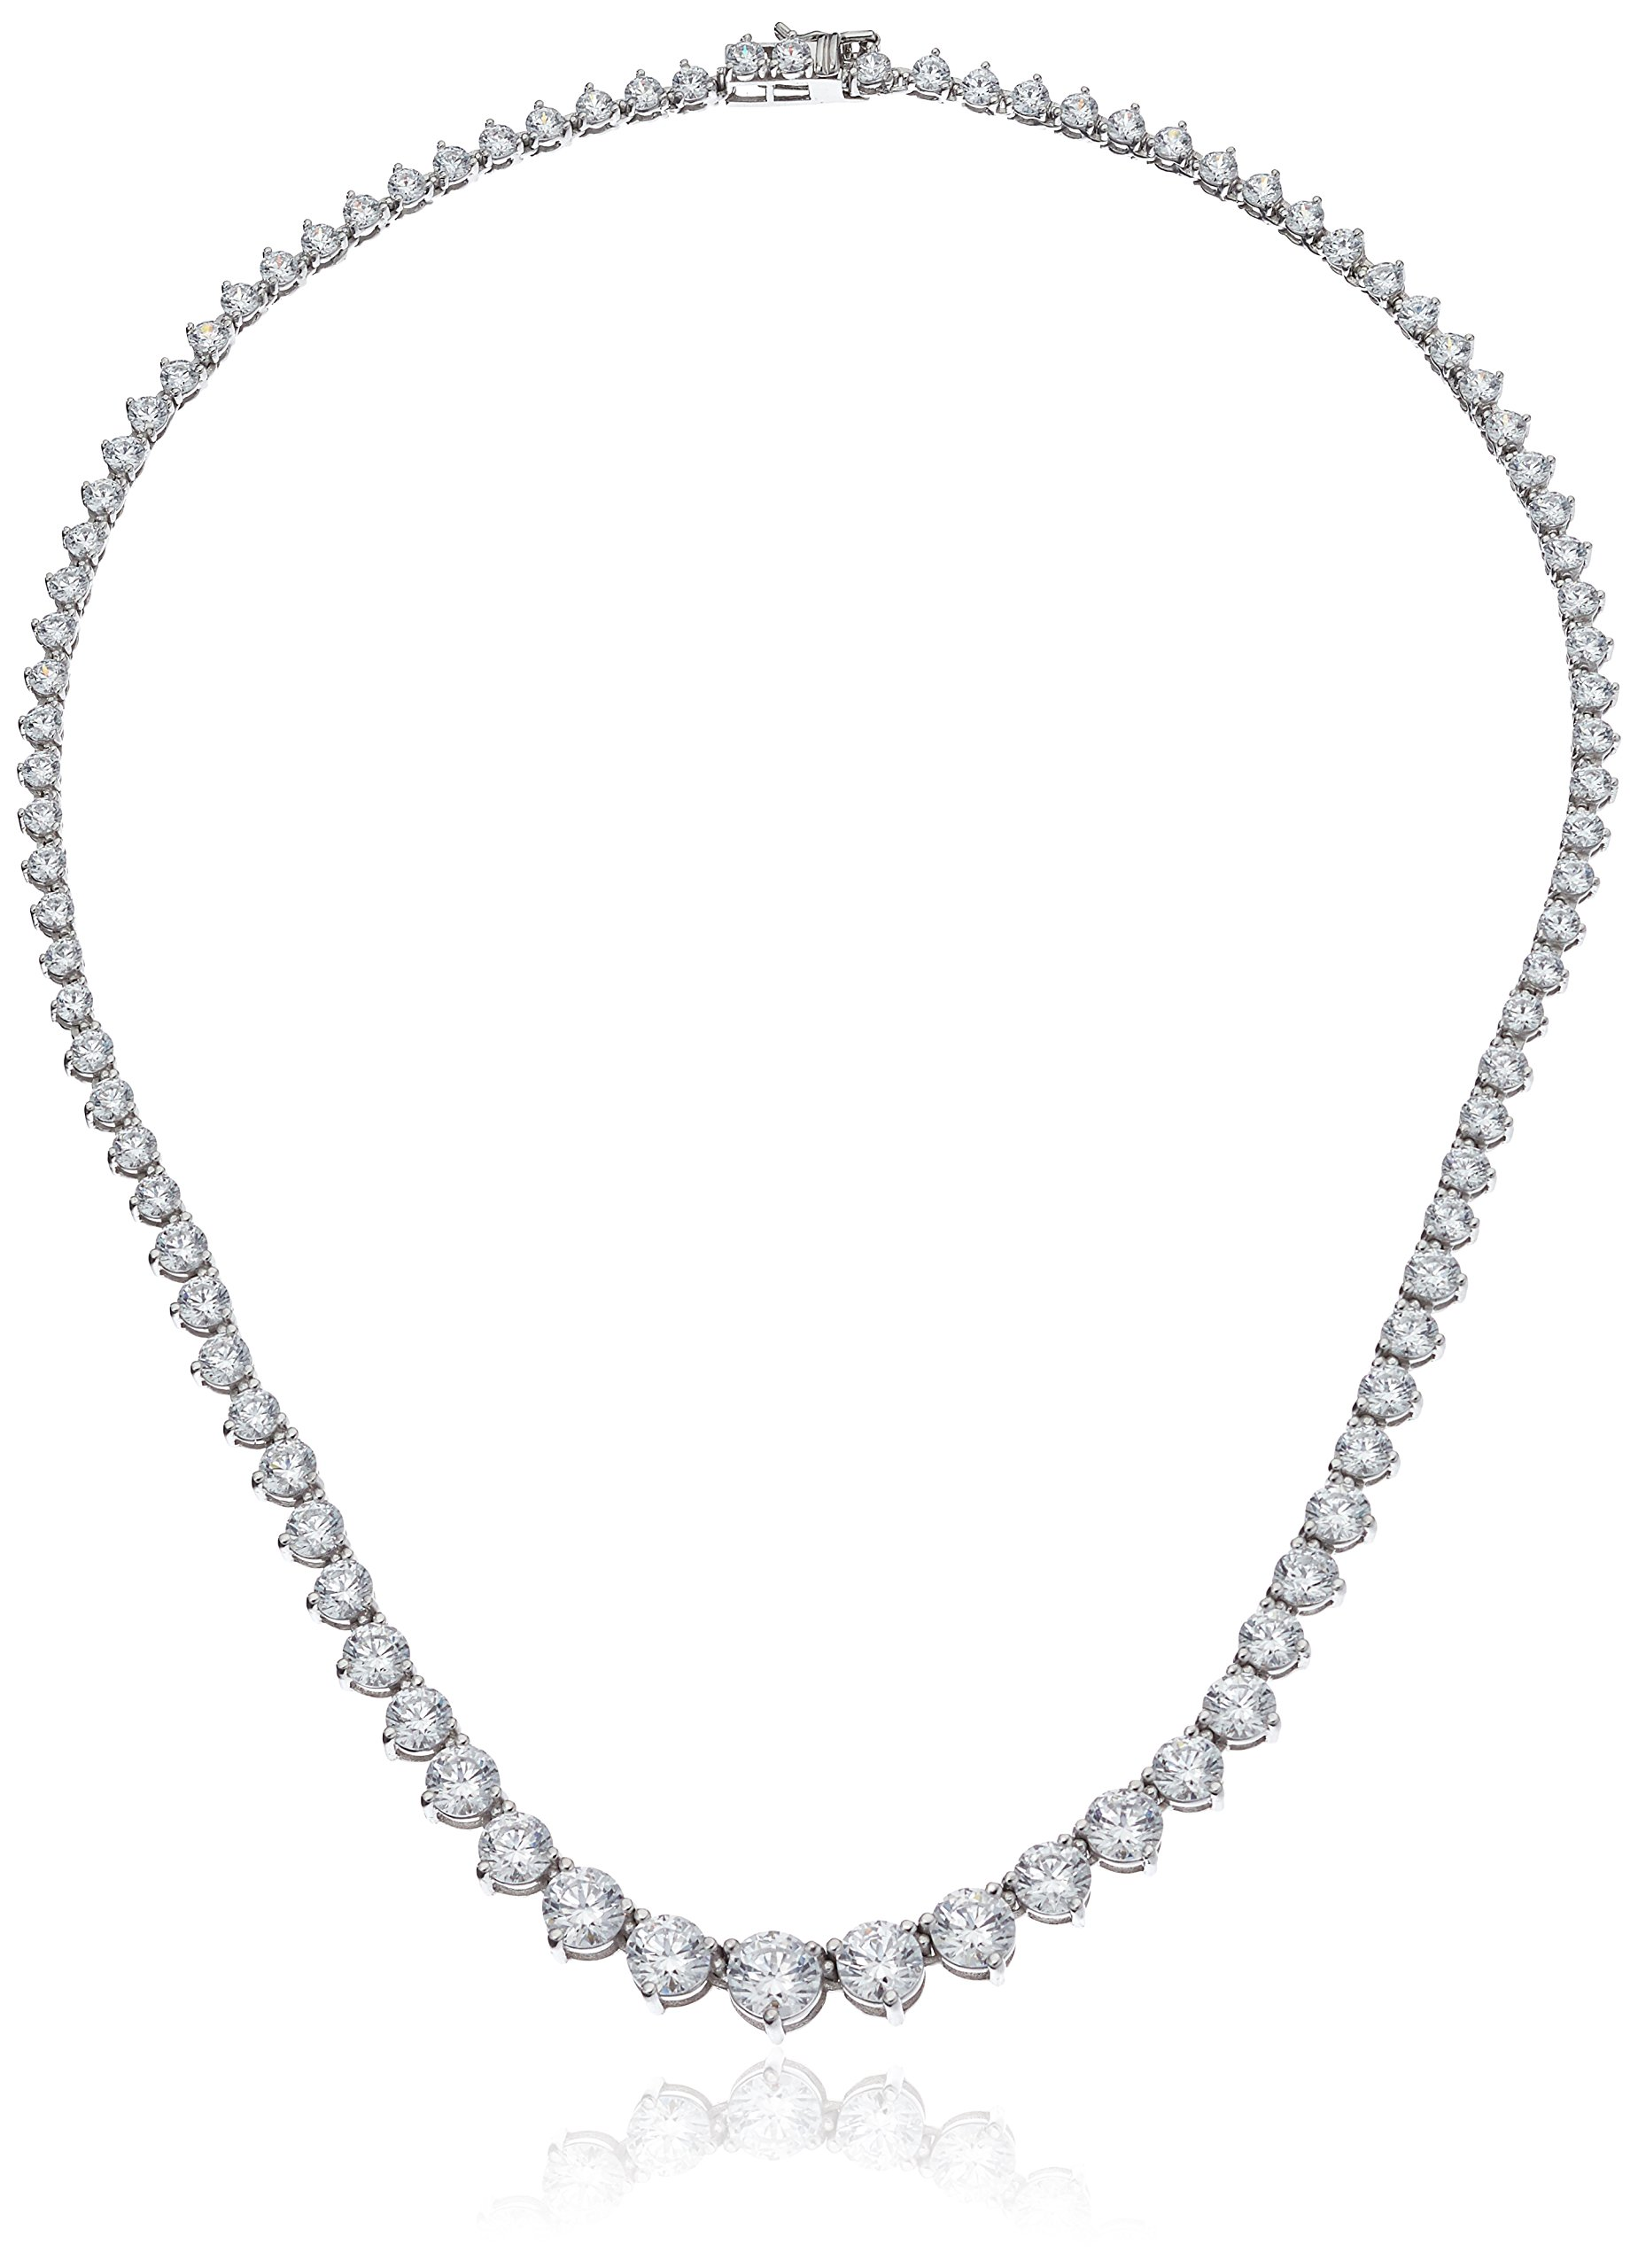 Platinum Plated Sterling Silver Riviera Necklace set with Graduated Round Cut Swarovski Zirconia (20.75 cttw), 17''